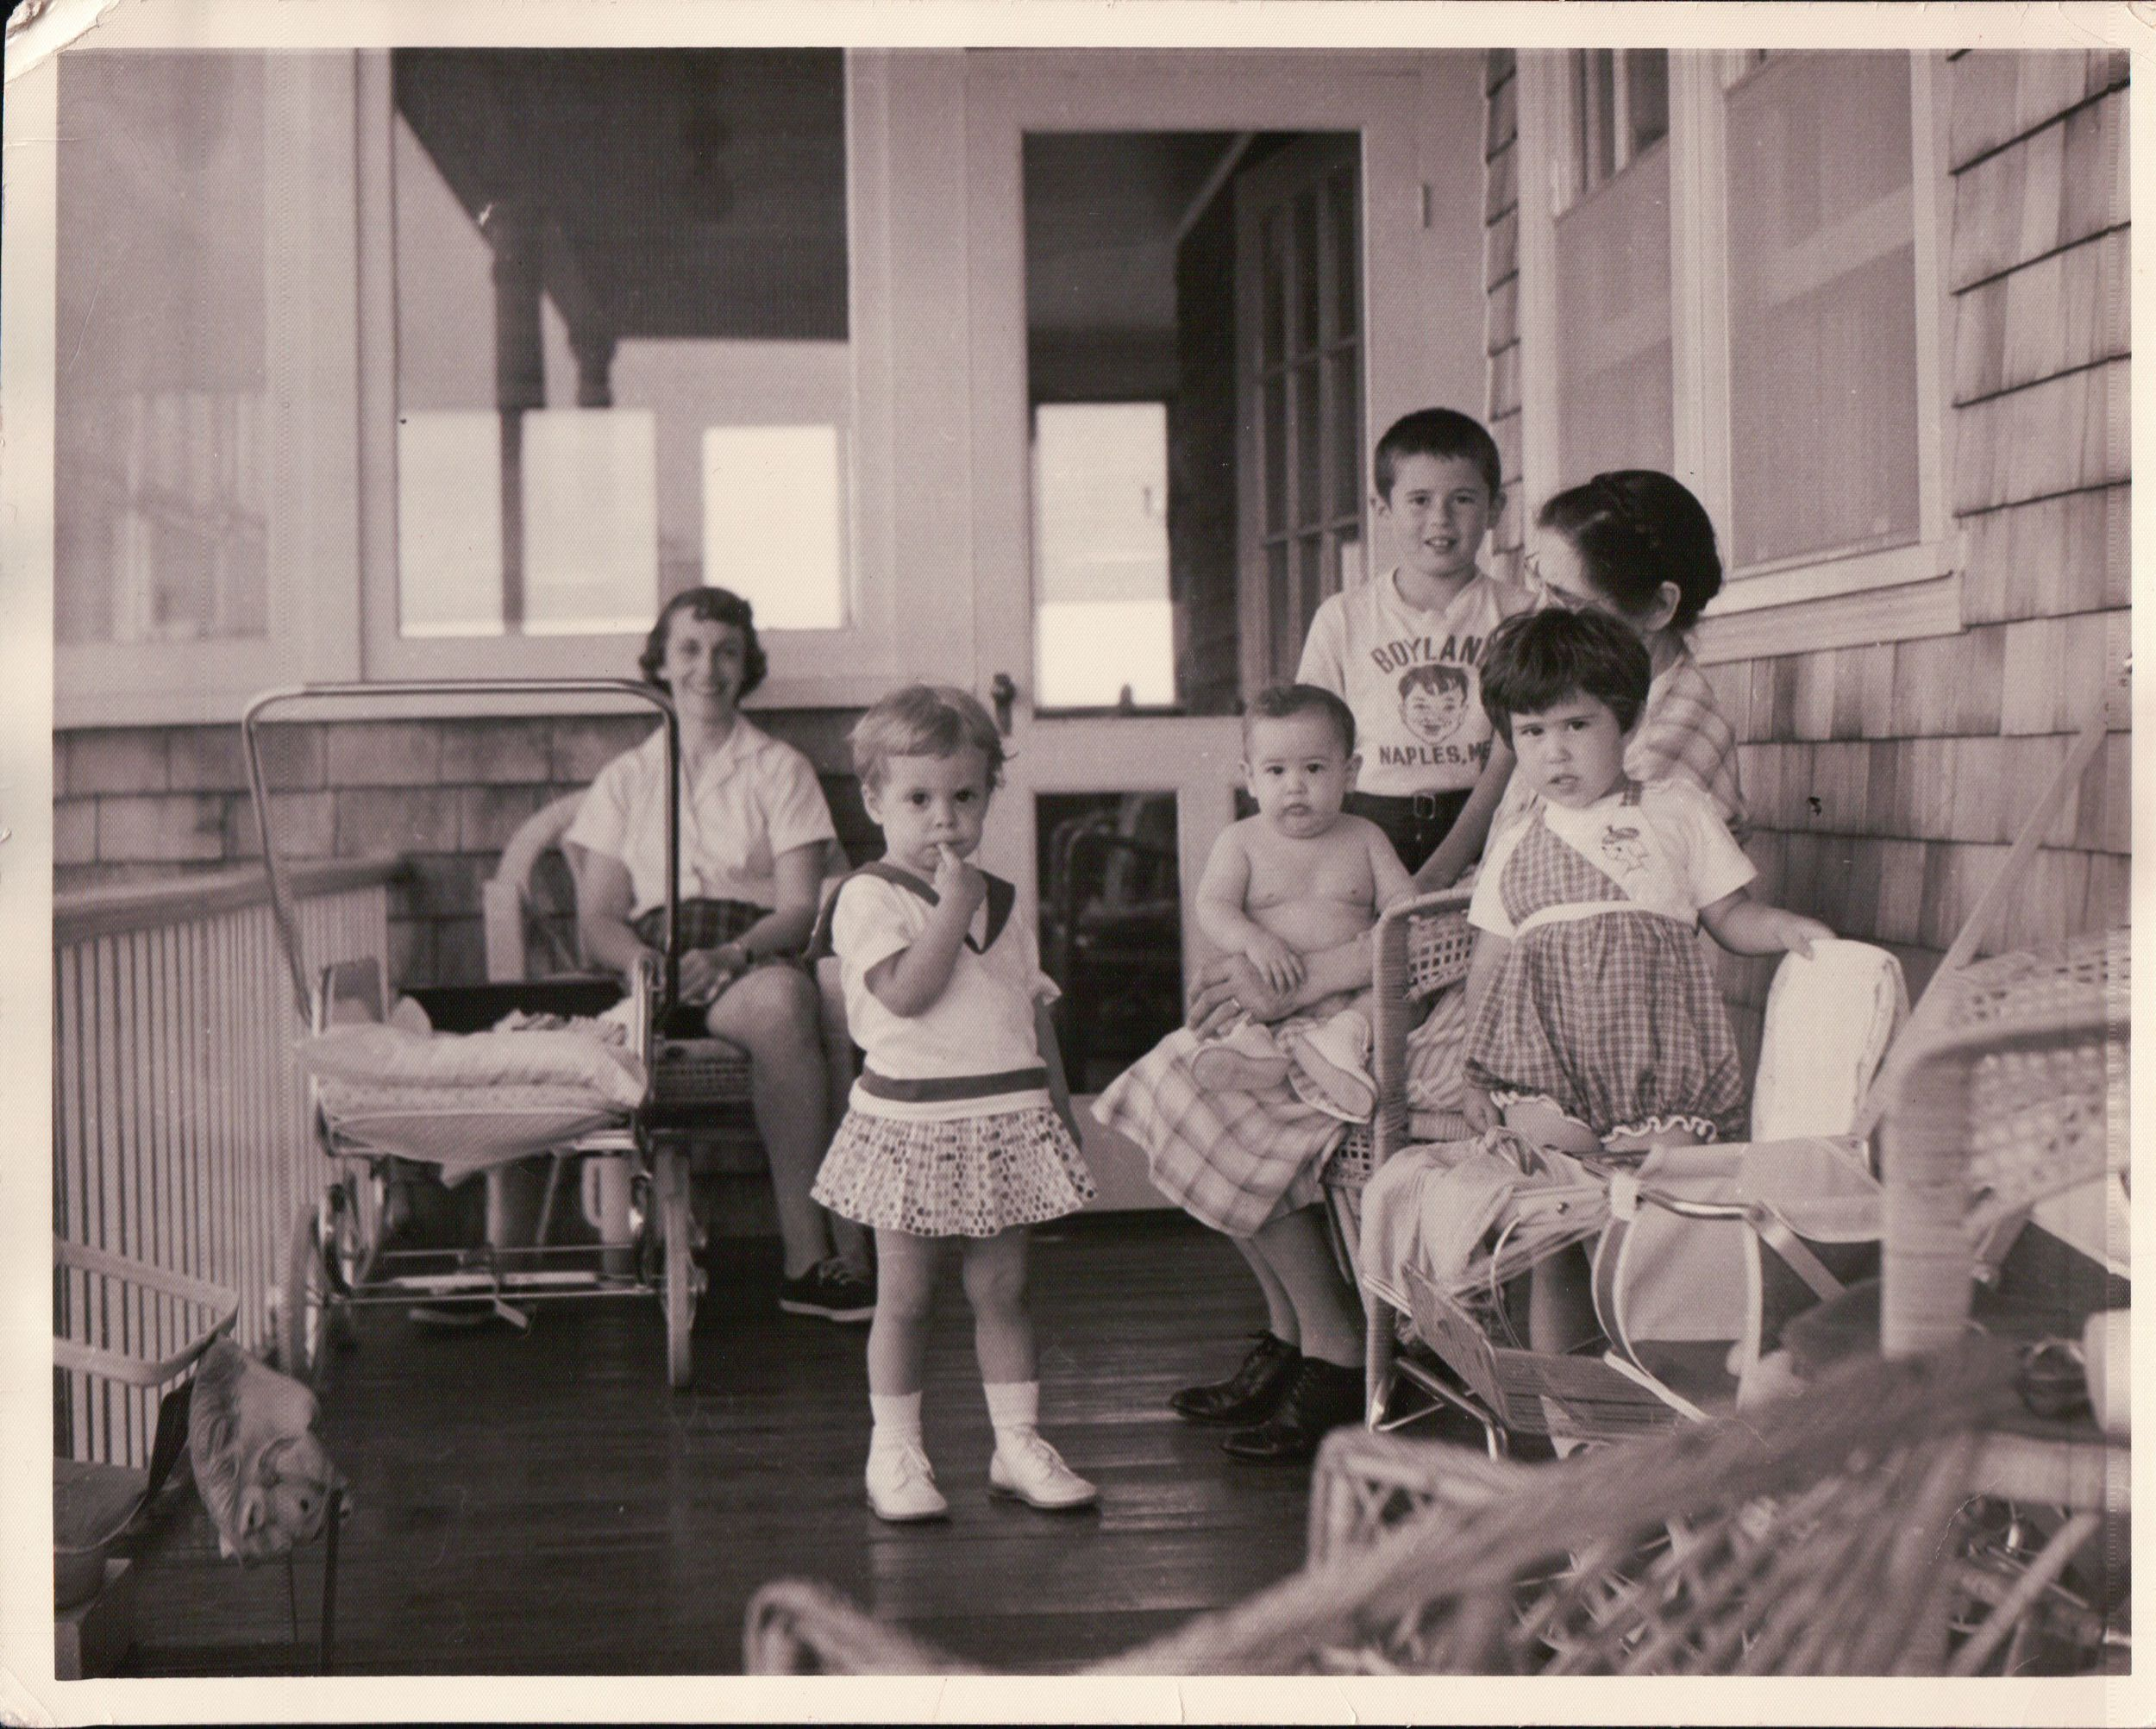 """Left to Right: Great Aunt Hilda Chadinha (late), her daughter Paula Chadinha Tucker, Uncle Martin A. Silva, my Father Paul F. Silva, Aunt Ana M. Larrivee (late), Great """"Vavo"""" Mary Gaspar (late); all hanging out on the porch of the family's old Swansea house, no longer in existence."""